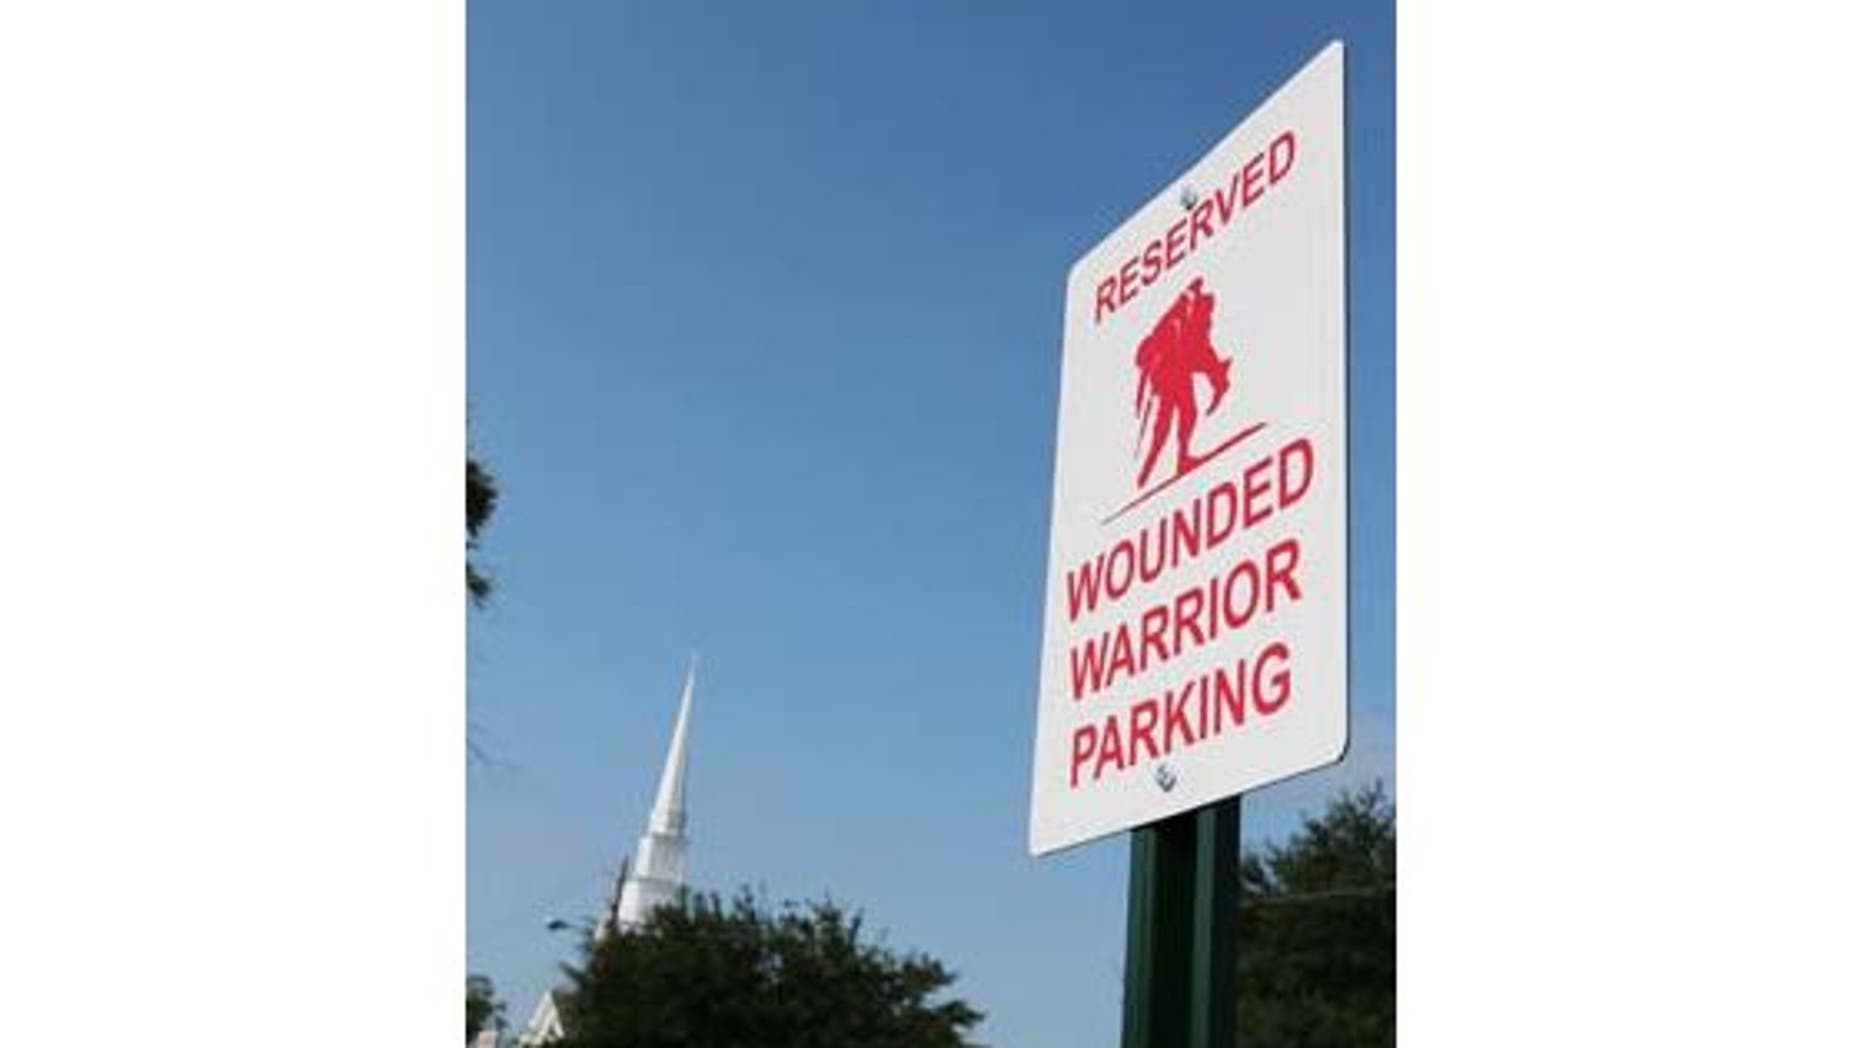 The Daily News of Jacksonville reports that the wounded red-and-white warrior parking signs will feature a logo of a soldier carrying a wounded fellow soldier from the battlefield. (John Althouse/The Daily News)